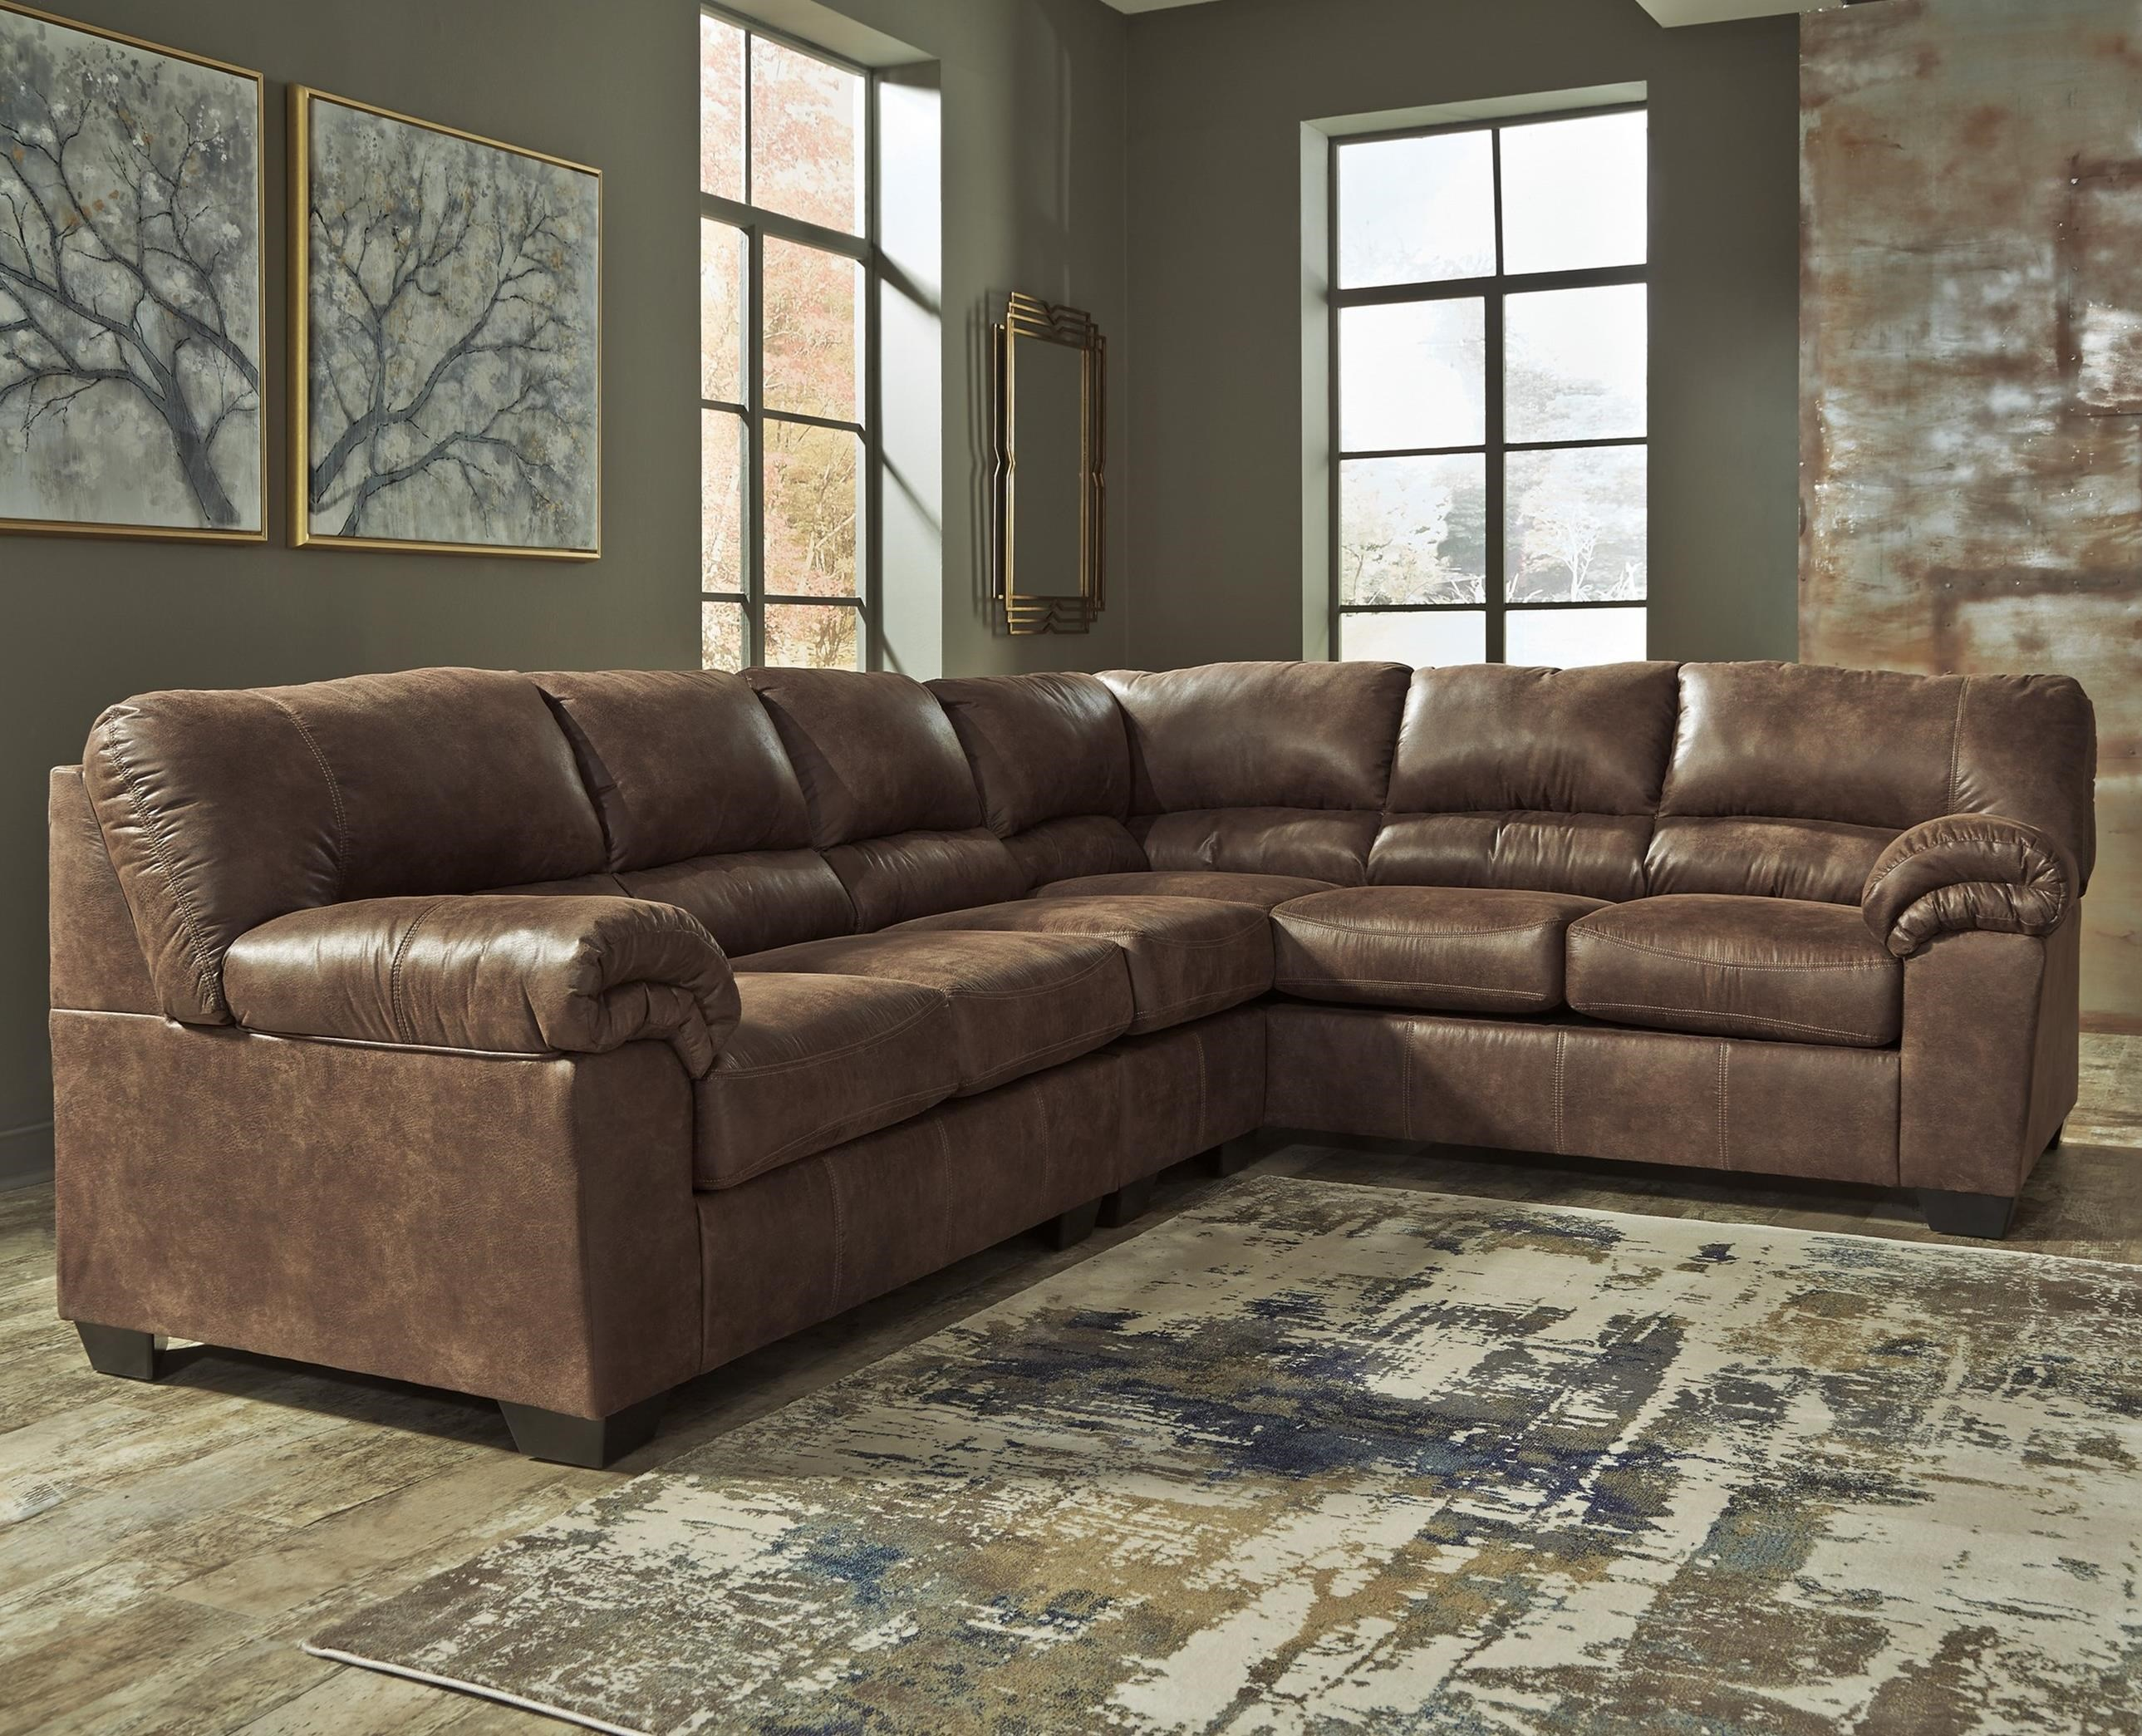 Bladen 3-Piece Sectional by Signature Design by Ashley at Sparks HomeStore